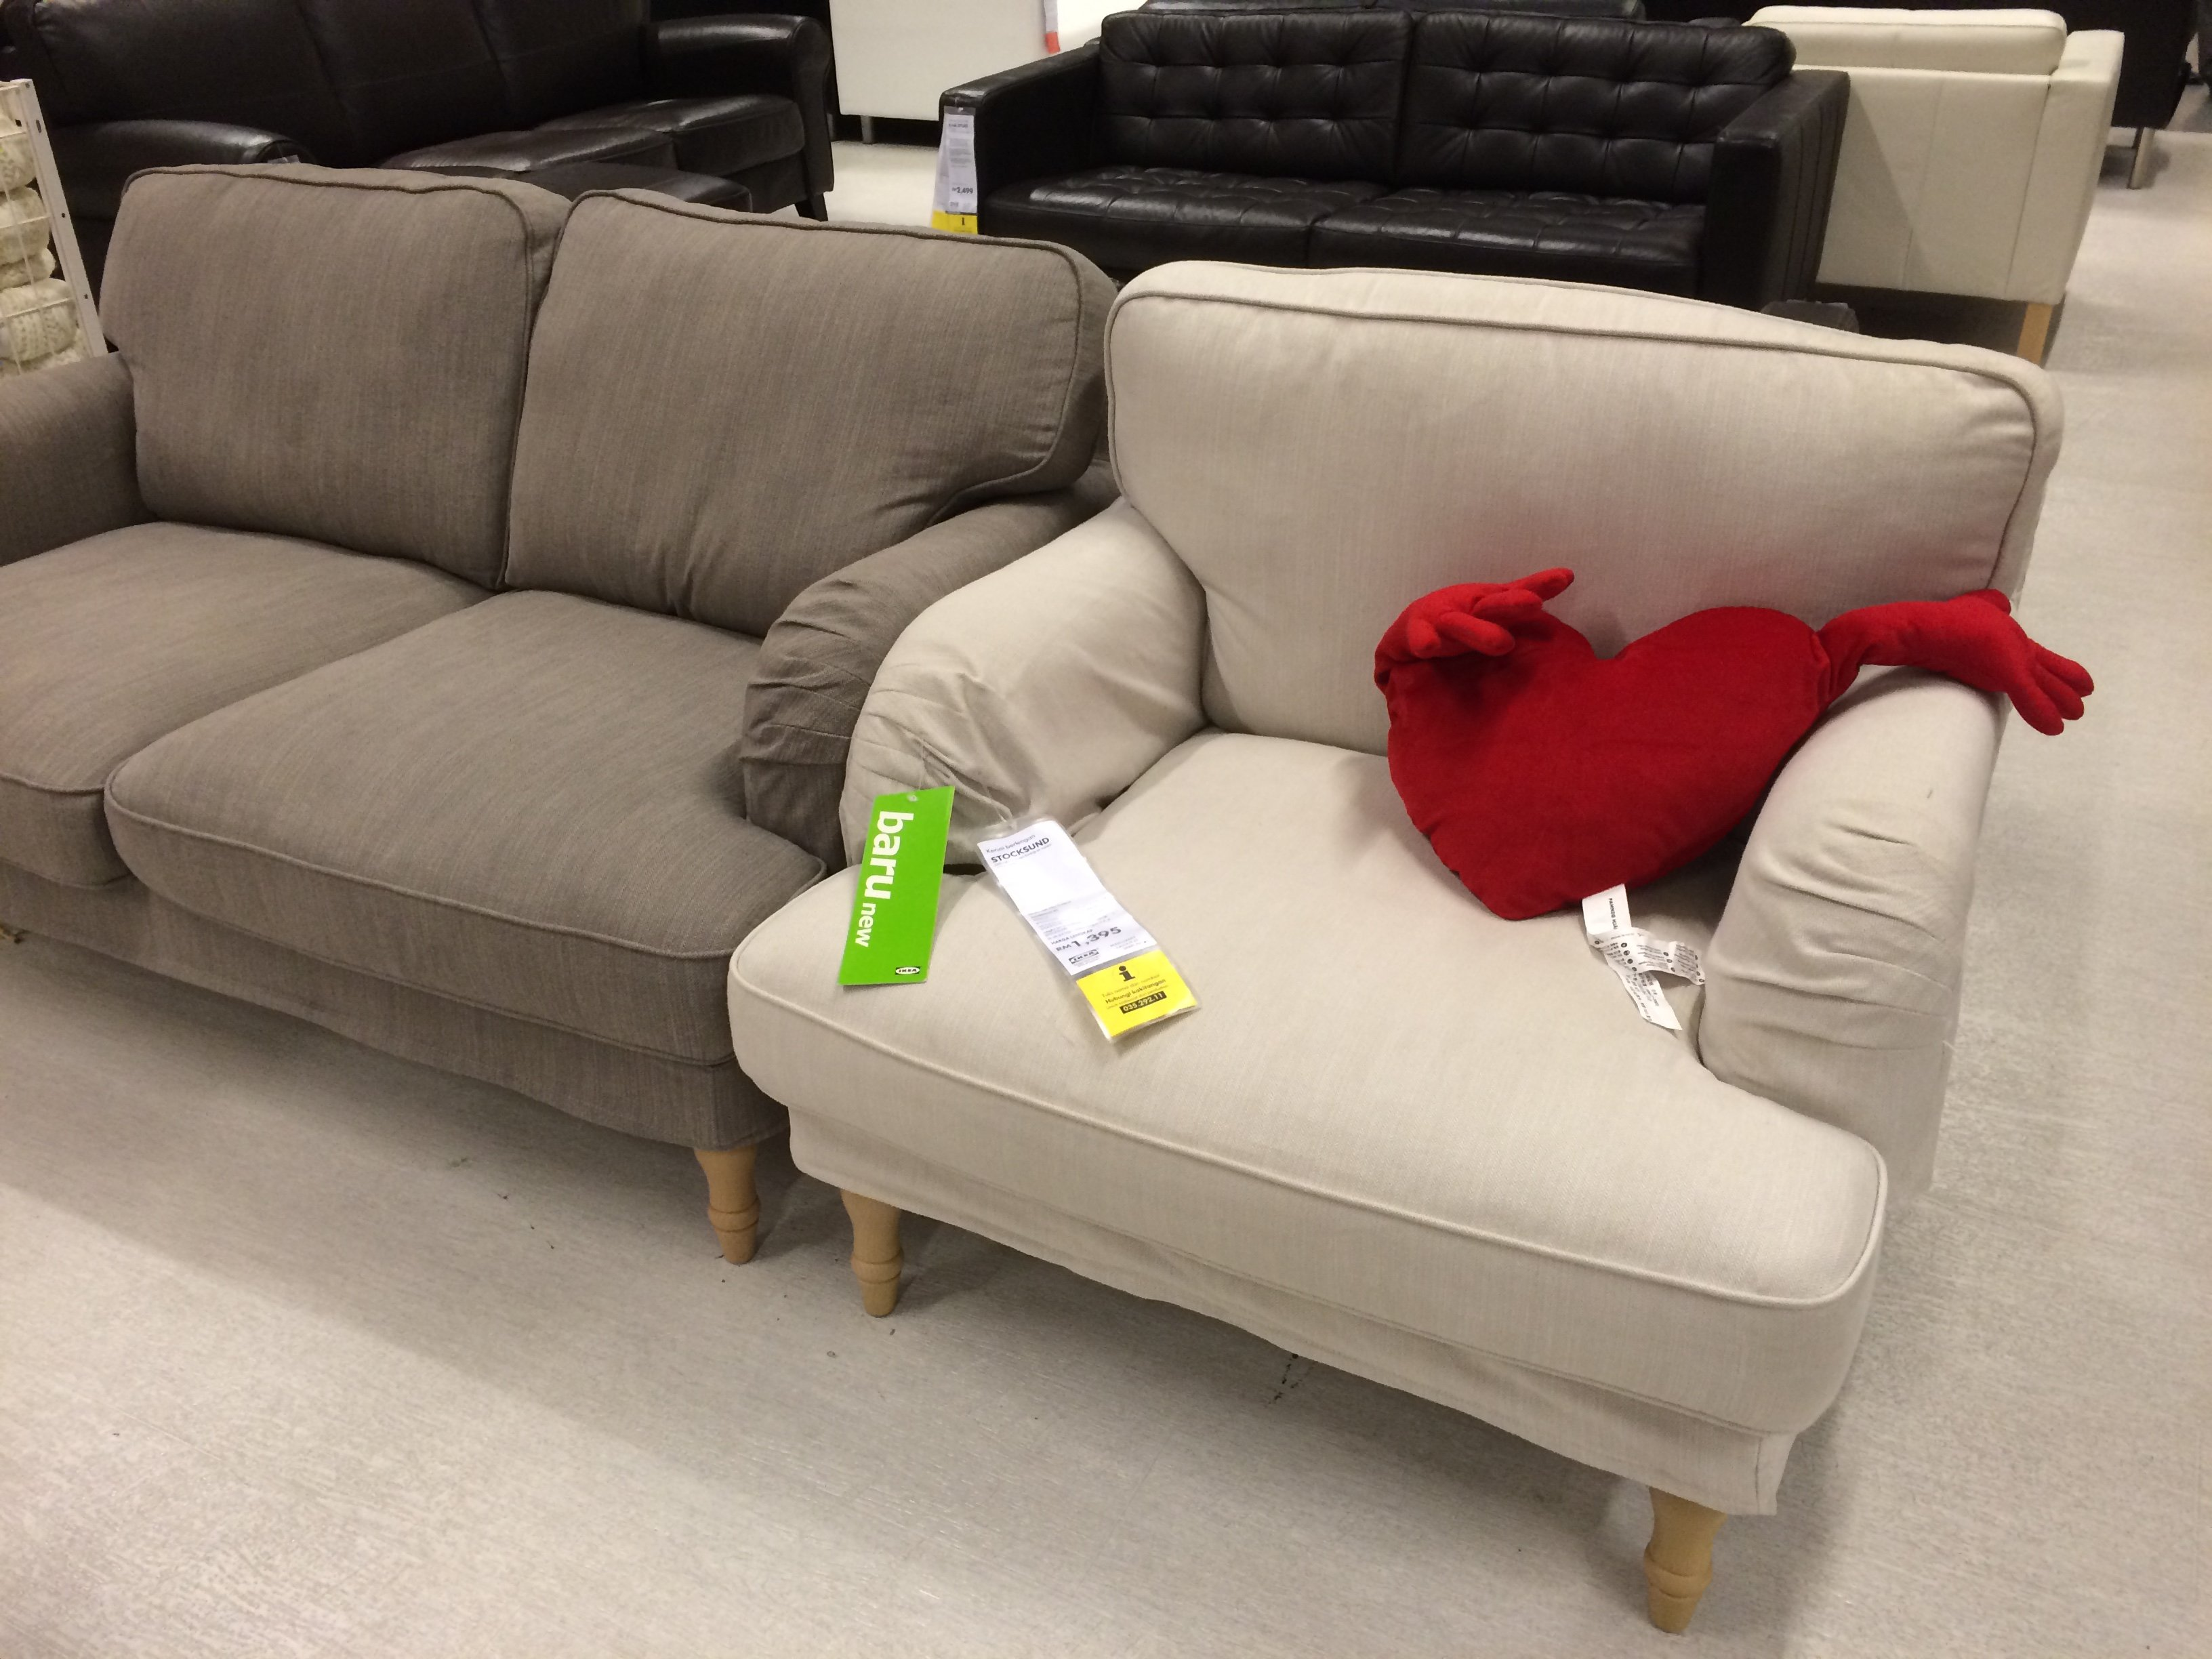 2er Sofas Ikea Stocksund Sofa Series 2014 Review New At Ikea